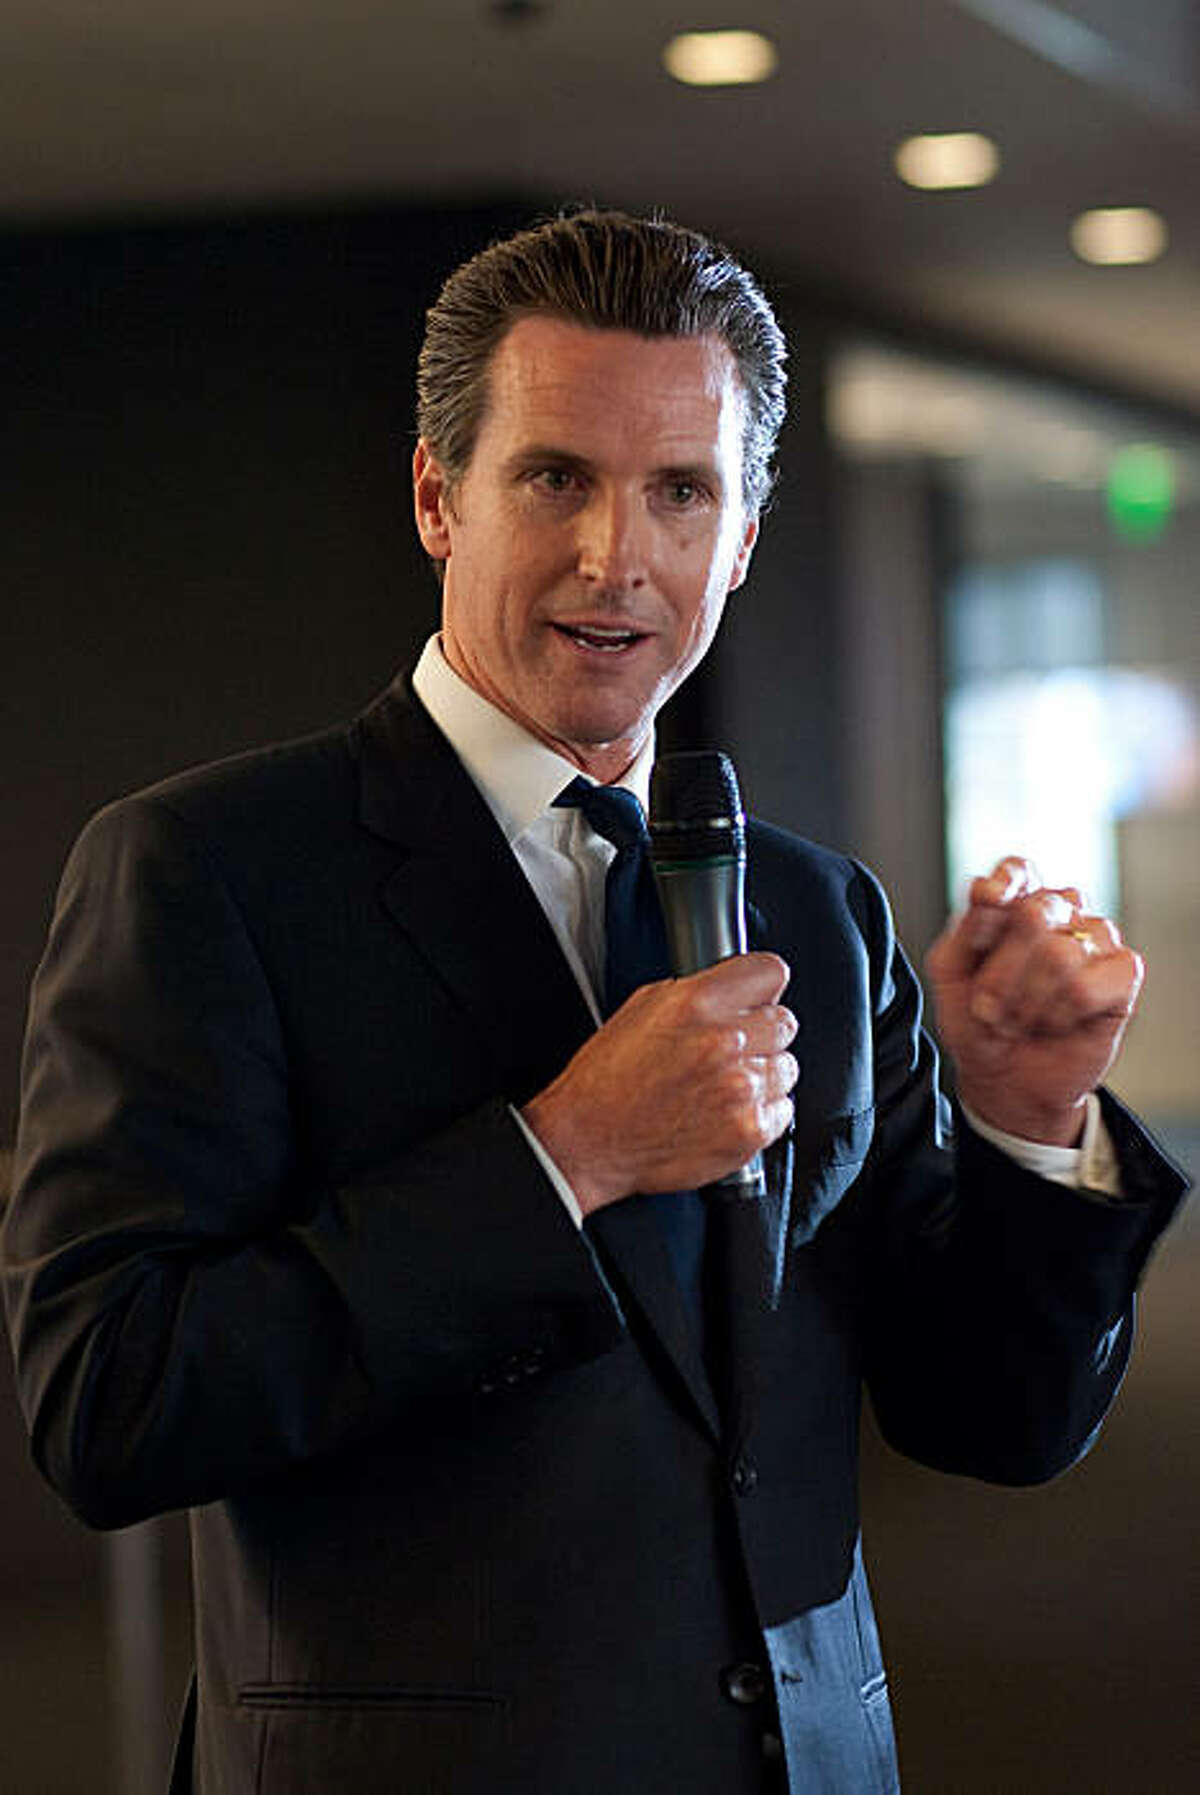 San Francisco Mayor Gavin Newsom speaks to people during the launch party celebrating the joining of Bloomberg News and the San Francisco Chronicle to produce a new daily business section in the Chronicle at Bloomberg's San Francisco bureau on June 22, 2010 in San Francisco, California. The collaboration, which will be named Business Report, The Chronicle with Bloomberg, will feature stories produced by both the Chronicle staff and Bloomberg News and is the first of it's kind in the United States. Photograph by David Paul Morris/Special to the Chronicle